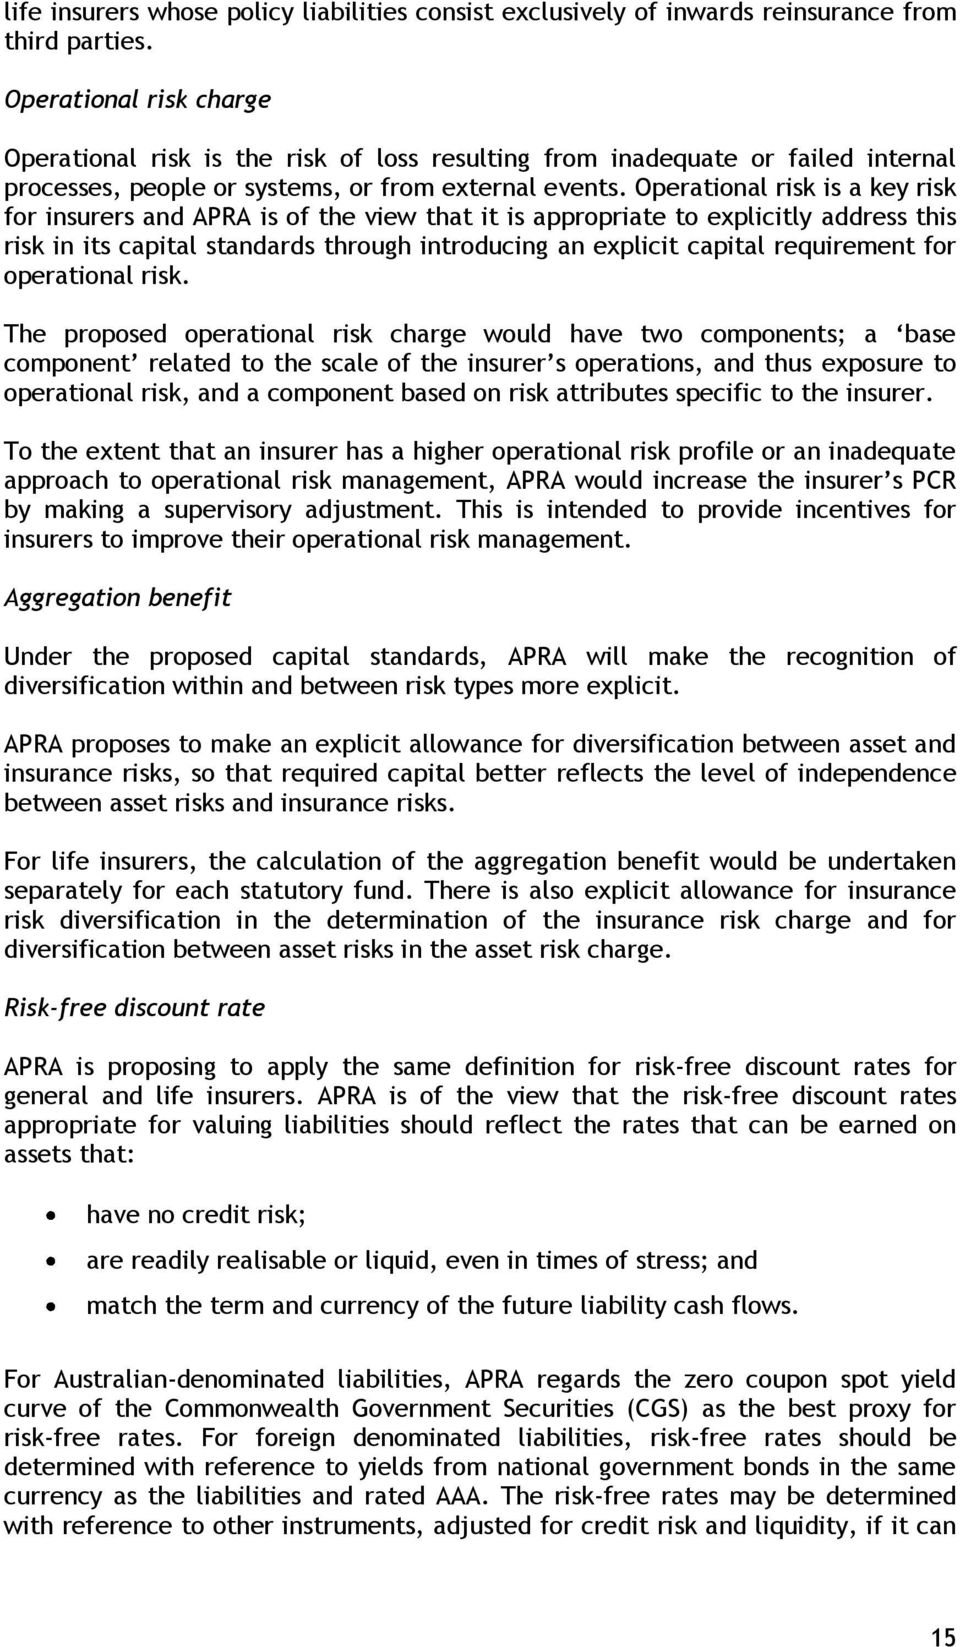 Operational risk is a key risk for insurers and APRA is of the view that it is appropriate to explicitly address this risk in its capital standards through introducing an explicit capital requirement